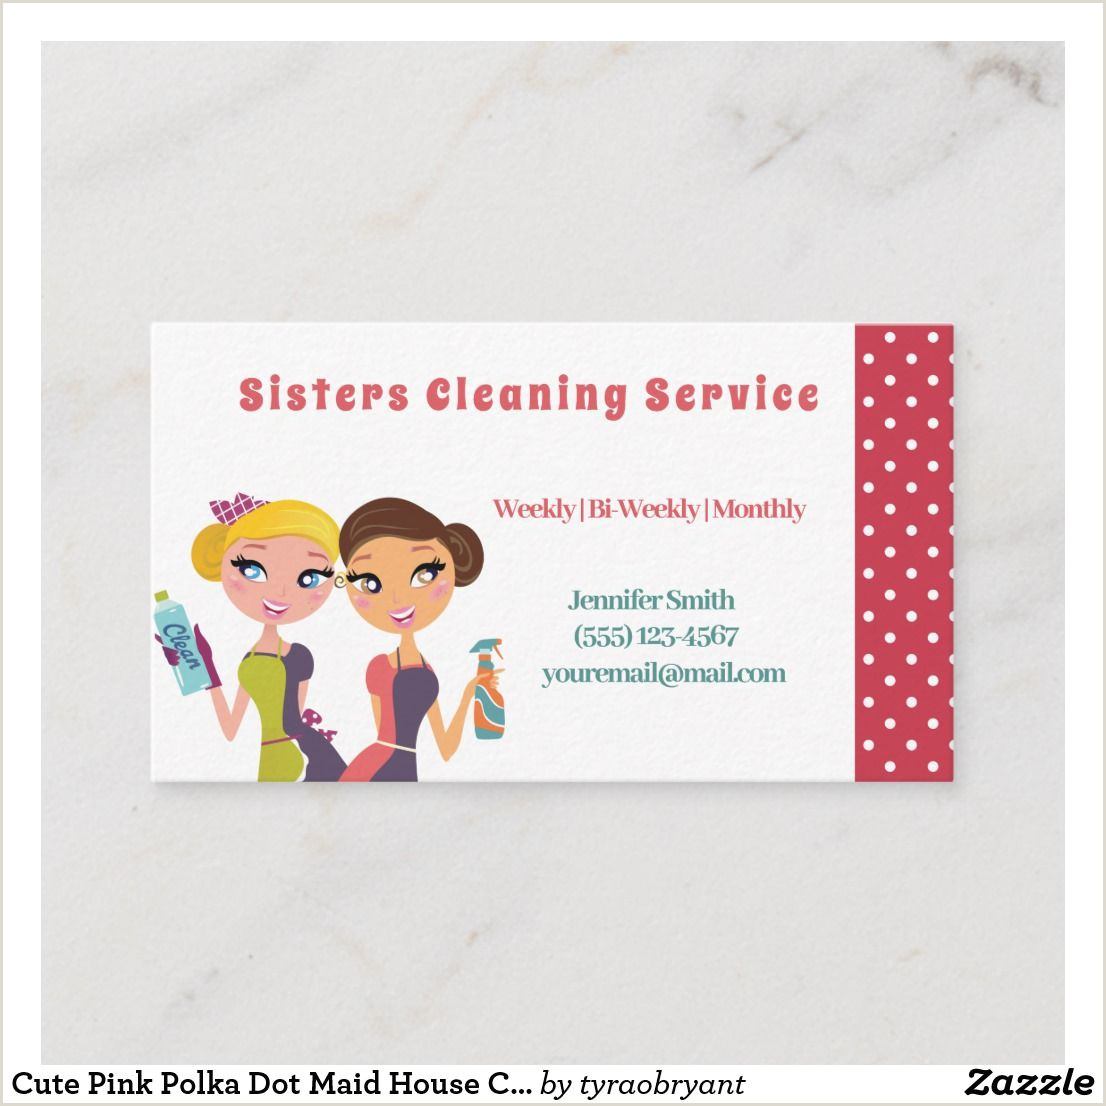 Unique Cleaning Business Cards Cute Pink Polka Dot Maid House Cleaning Service Business